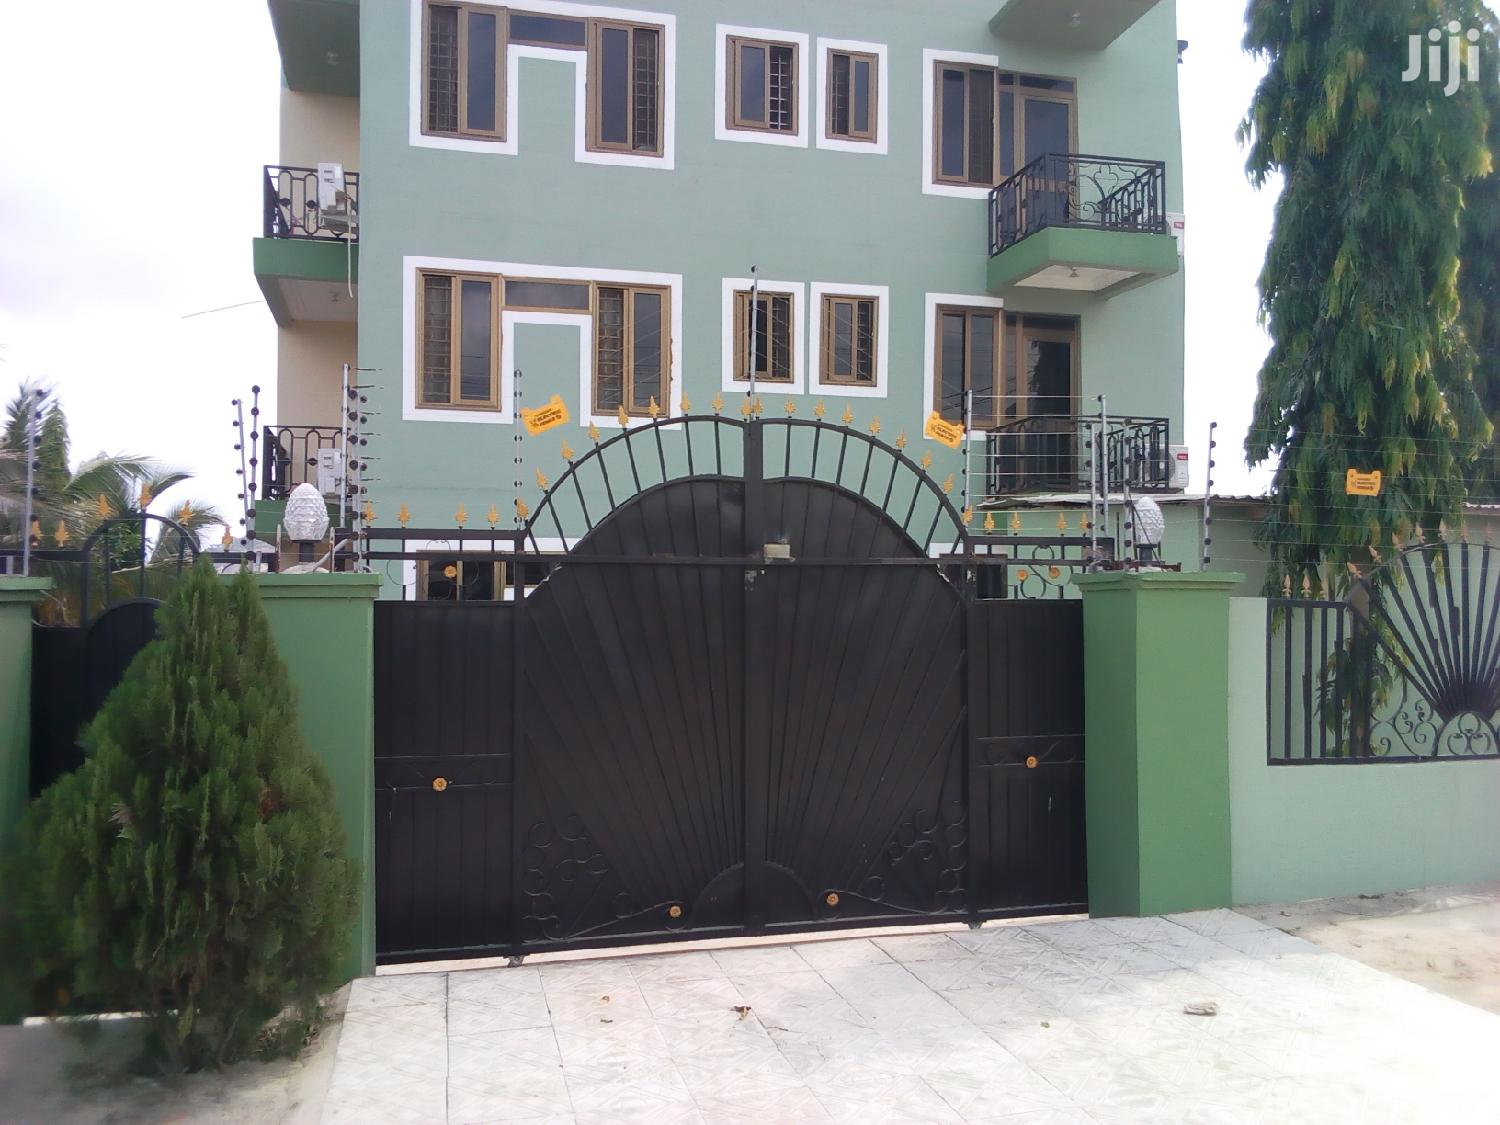 Powerful 2 Bedrm Duplex for 6 Months Rent Kasoa Toll Booth | Houses & Apartments For Rent for sale in Awutu Senya East Municipal, Central Region, Ghana